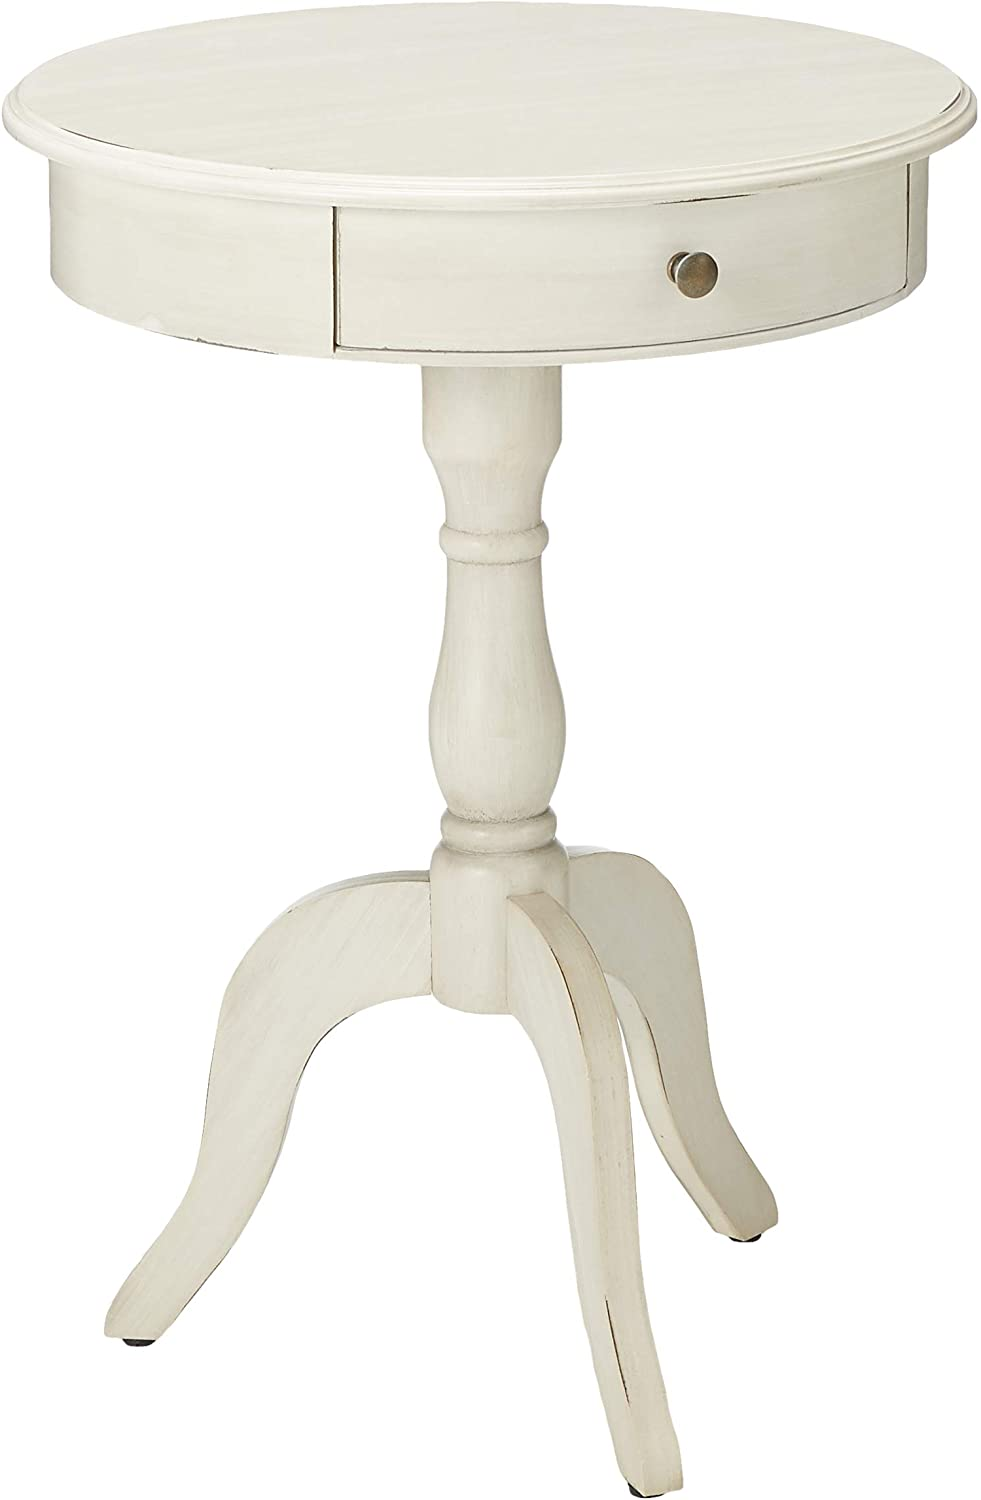 Amazon Com Décor Therapy Pedestal Table With Drawer Antique White Furniture Decor